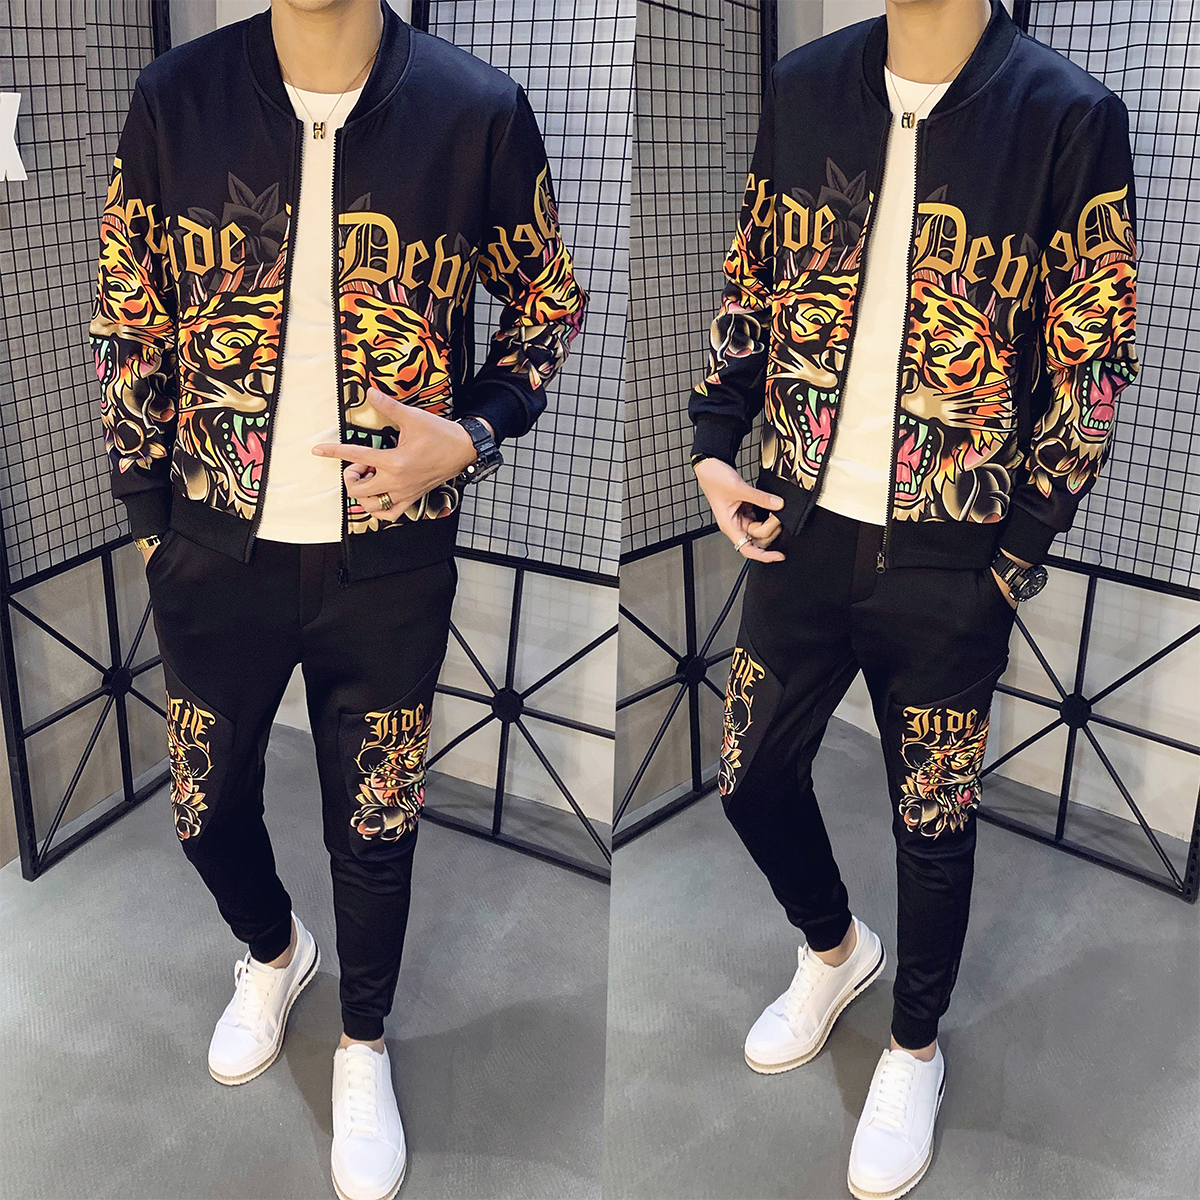 2020 Men Track Suit Jacket Sweatsuit Mens Sports Suits Casual Streetwear Social Sportwear Tiger Print Tracksuit Plus Size M-5XL